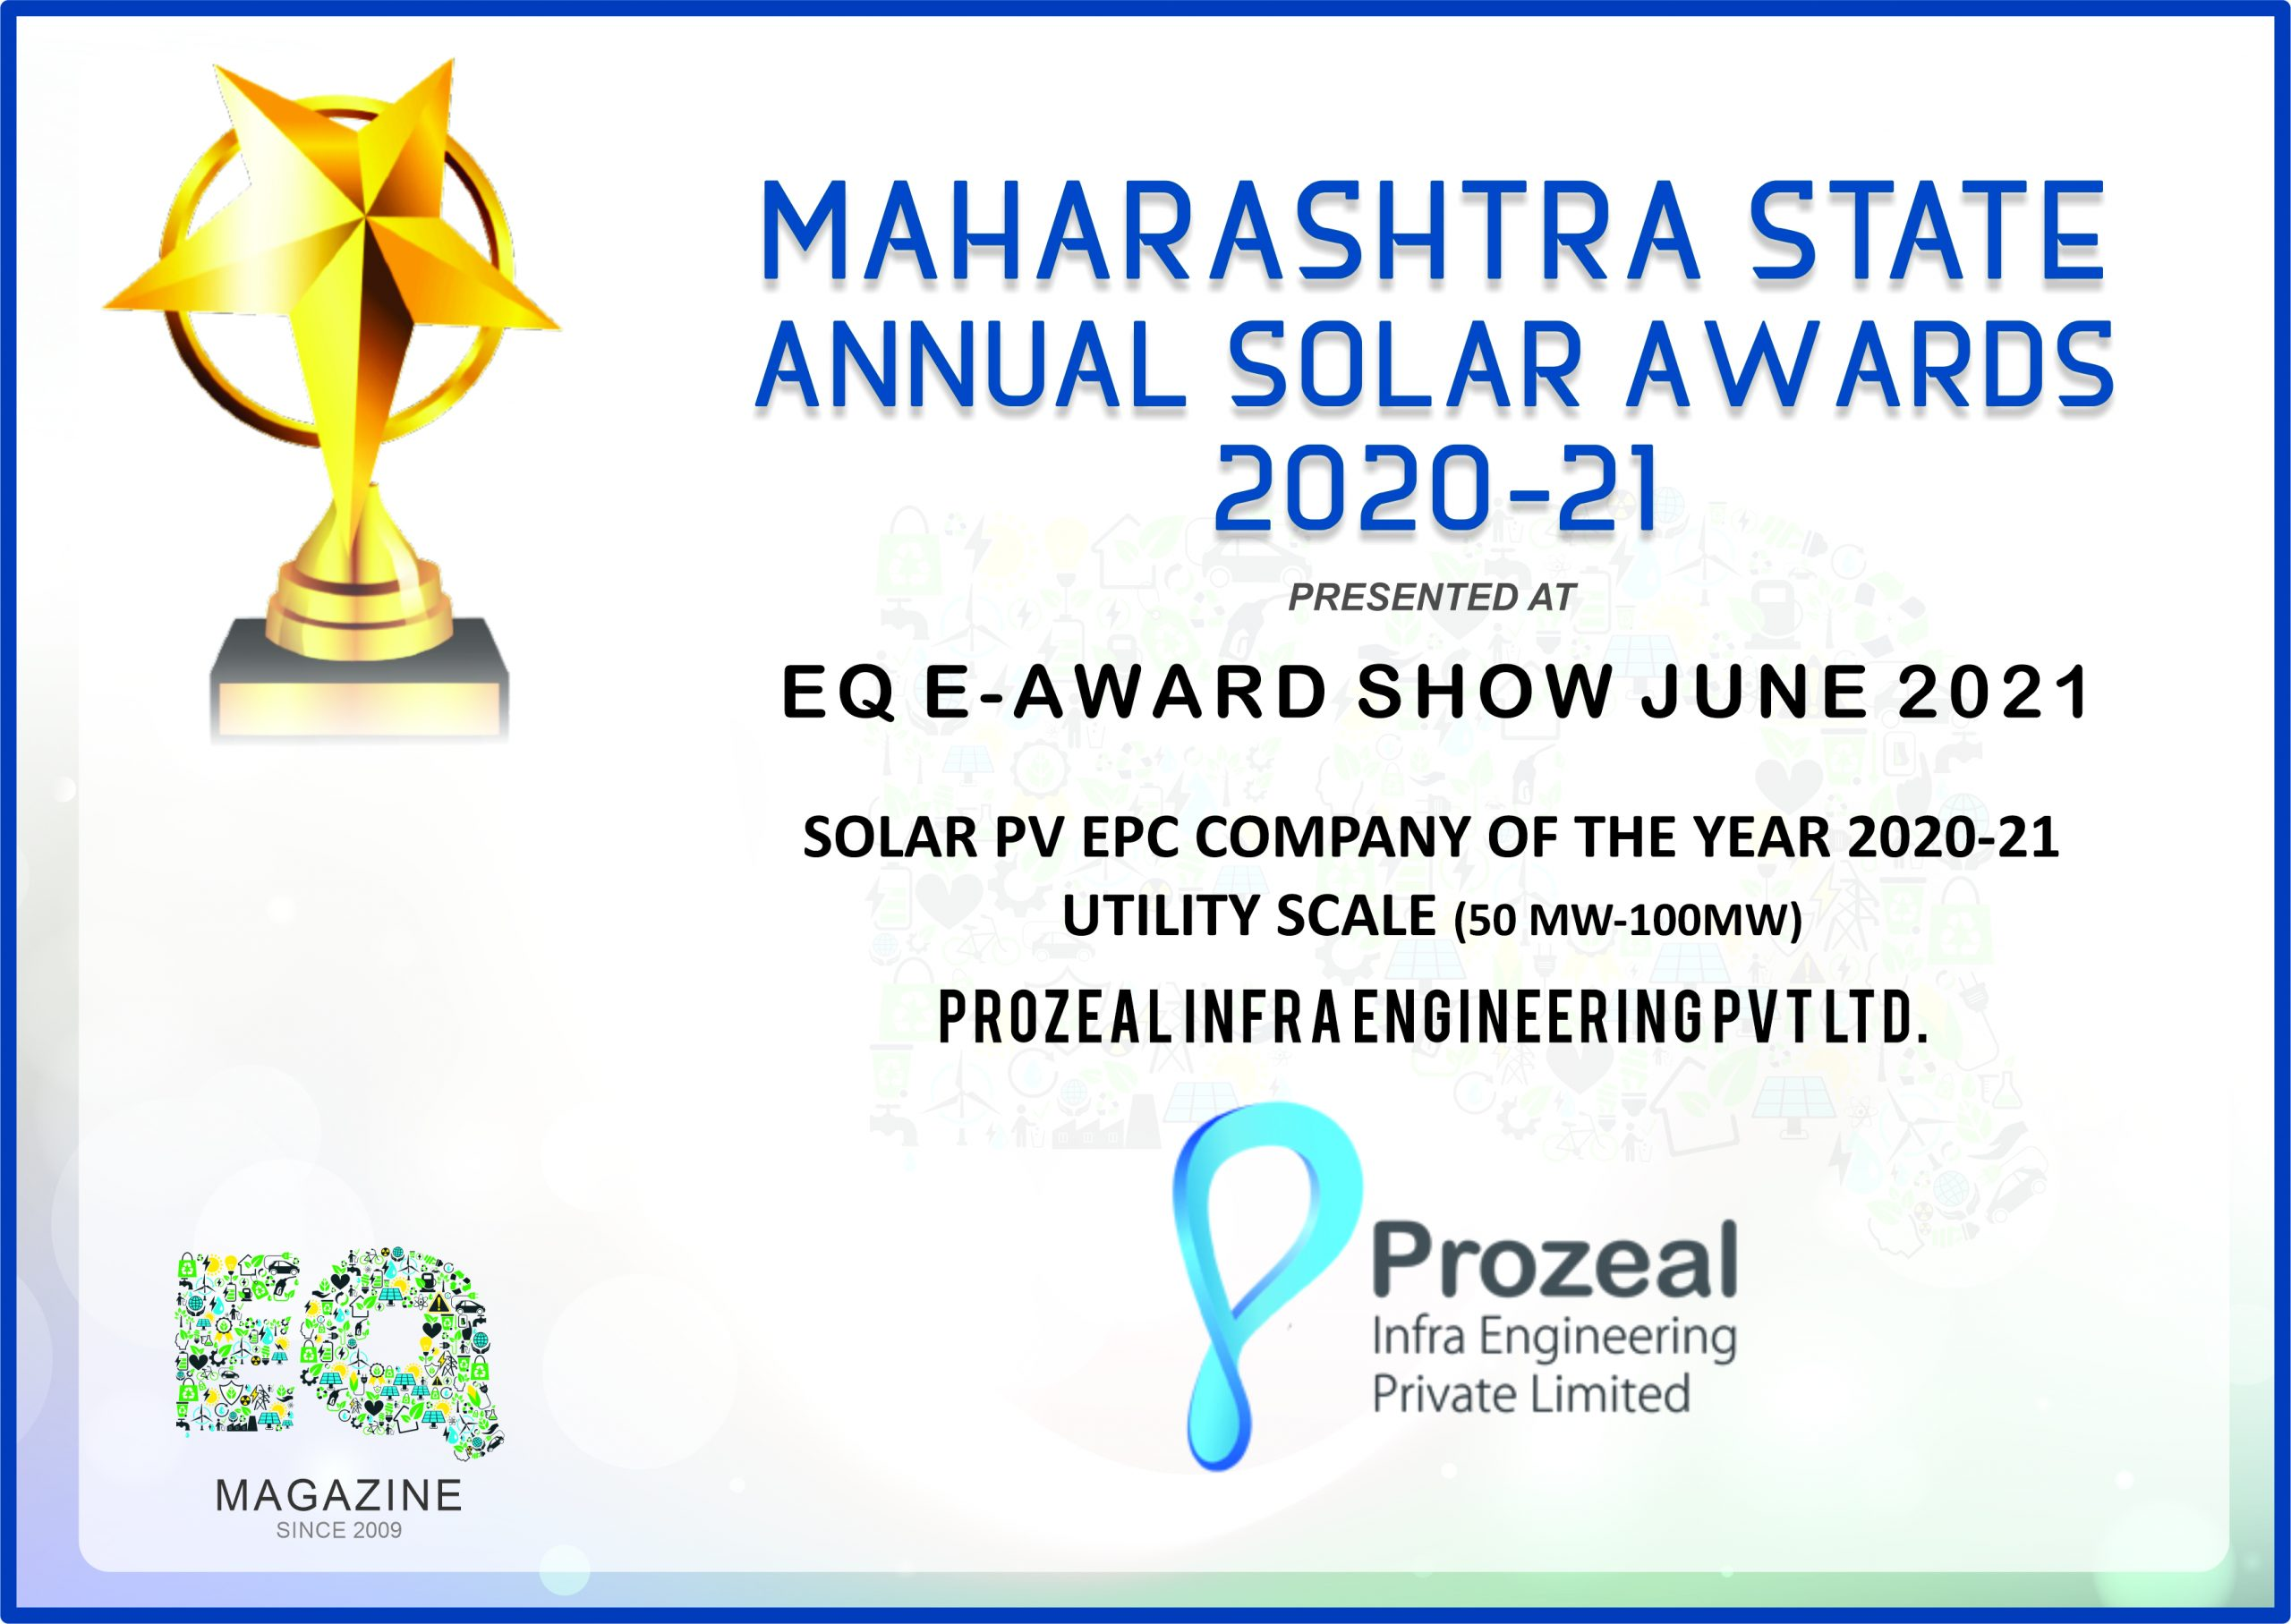 Prozeal Infra Engineering Wins Solar Award-'Solar PV EPC Company of the Year 2020-21 Utility Scale'